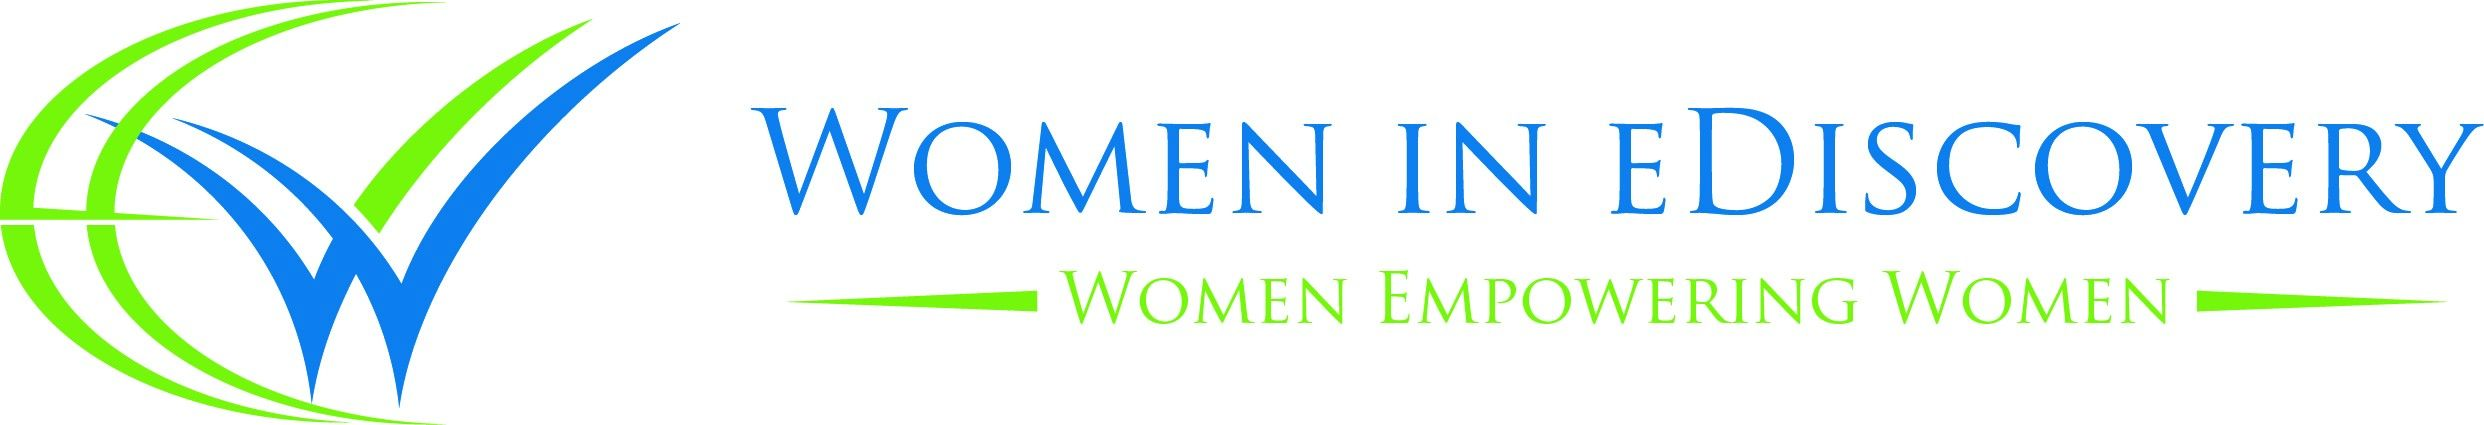 WomenineDiscovery Logo